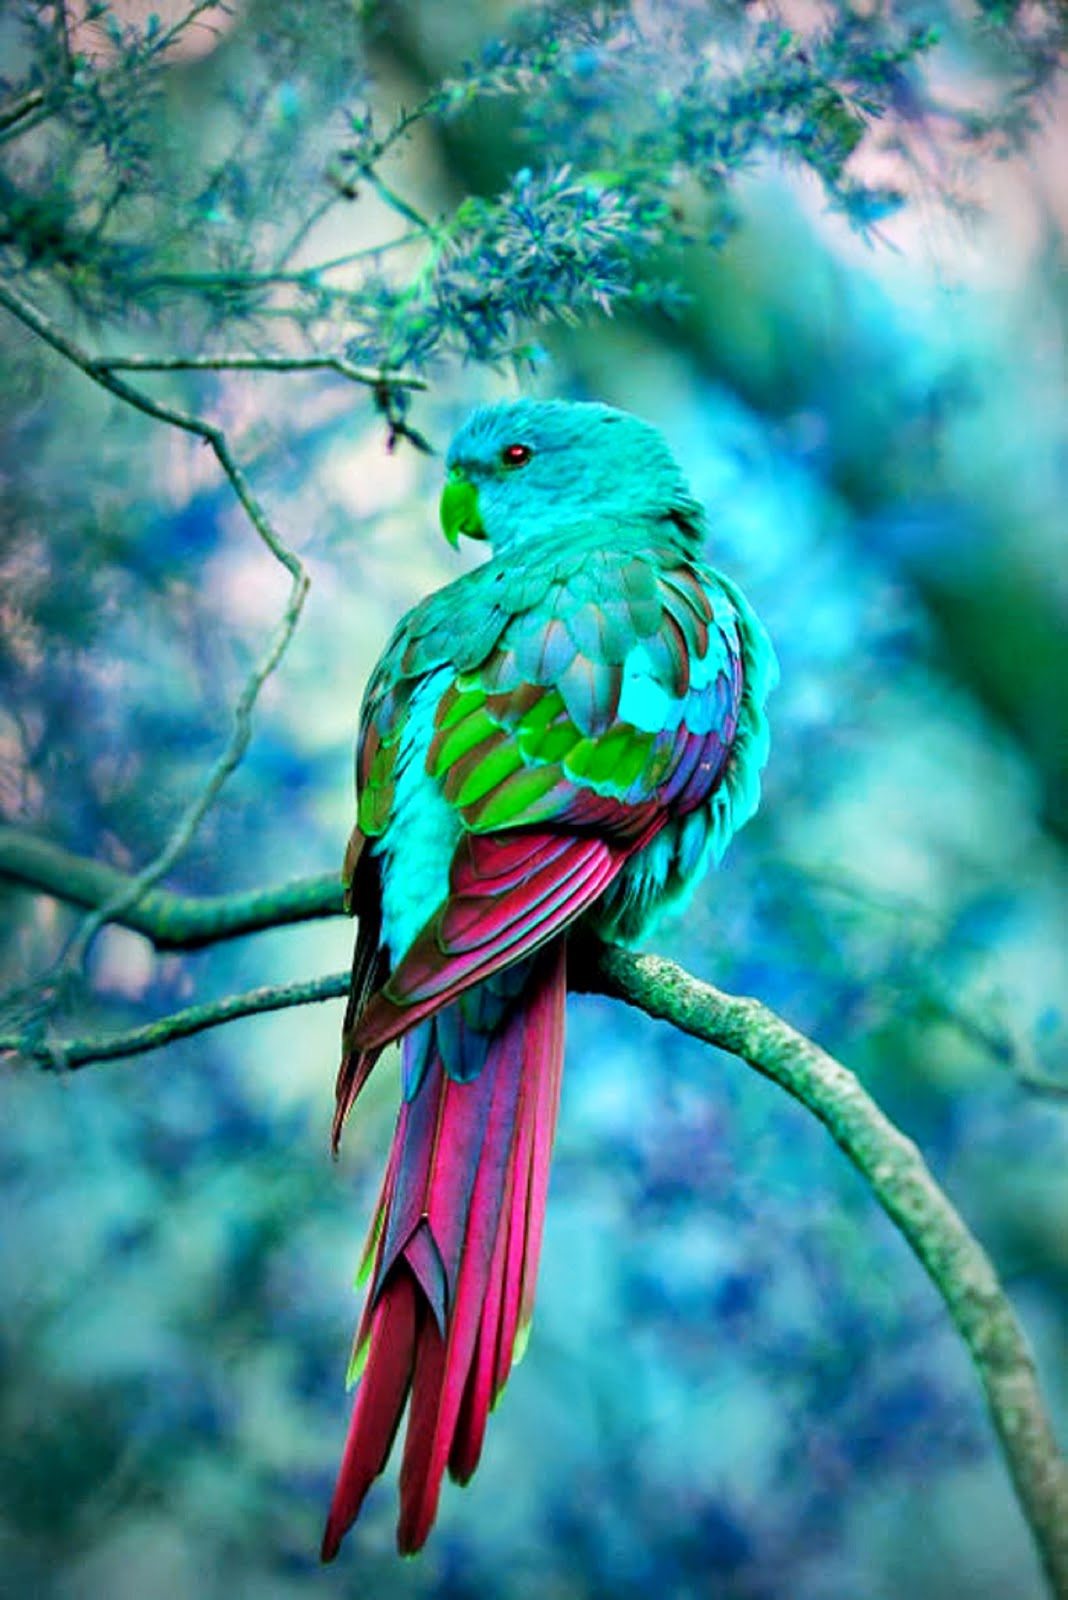 bird indigo bunting bird parrot animal forest